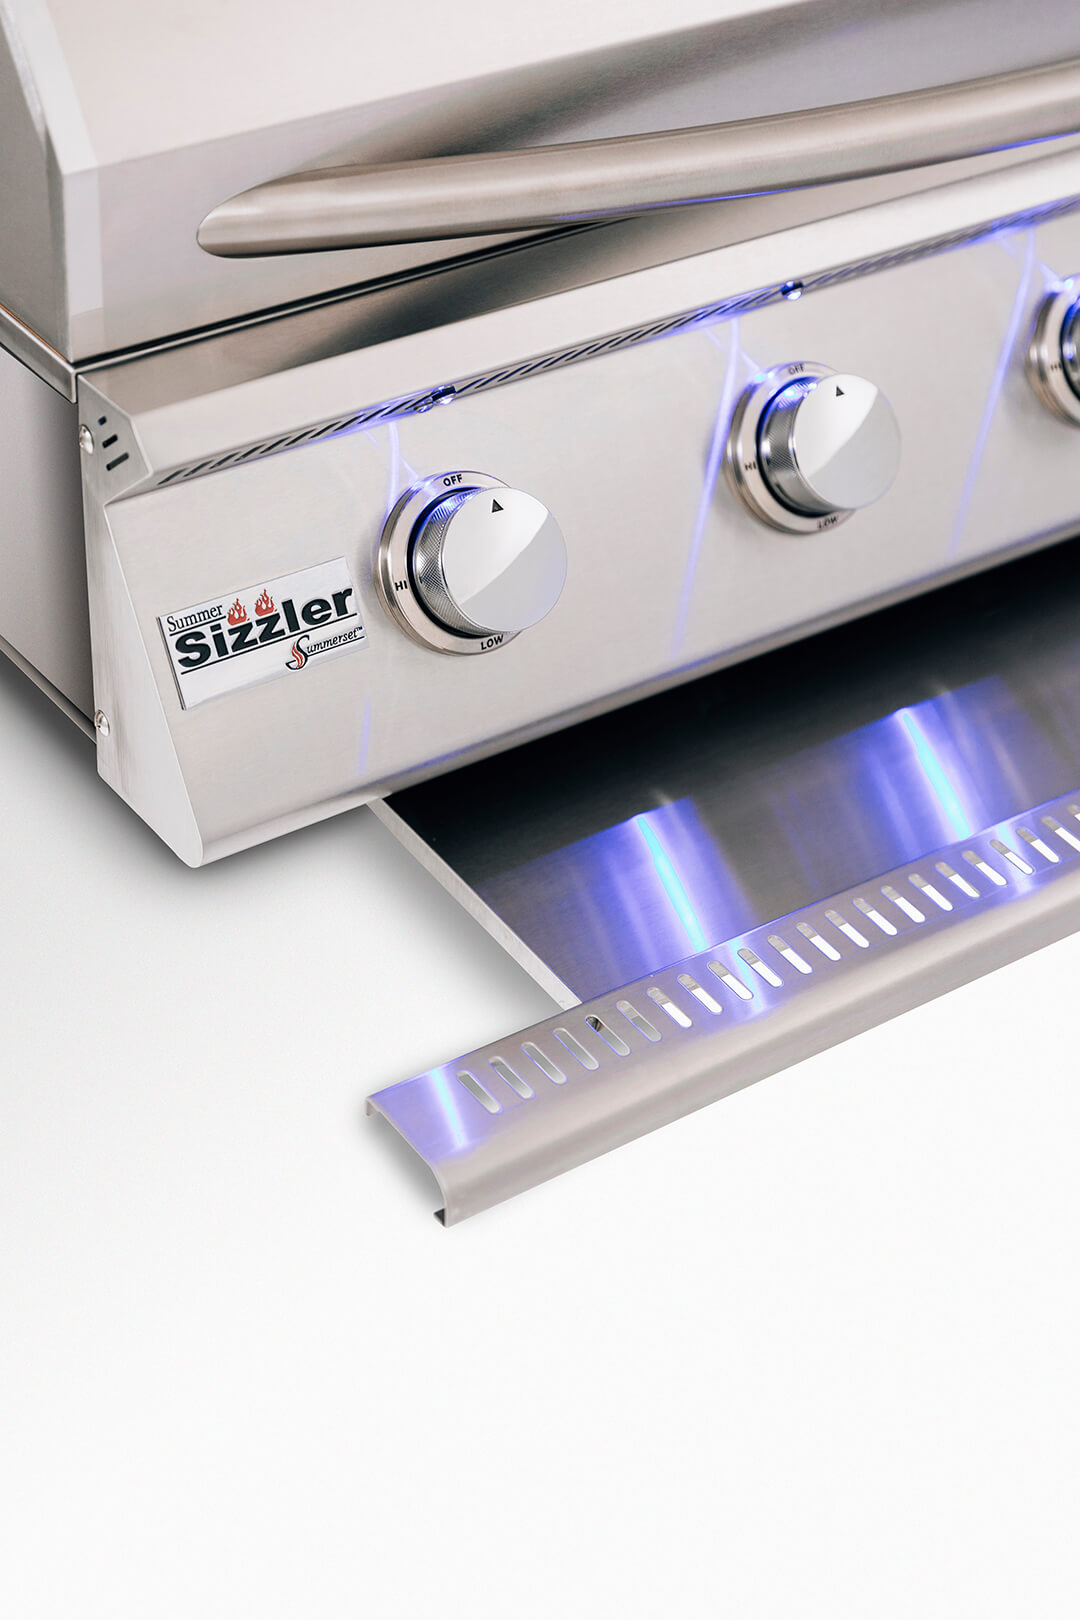 Summerset Sizzler Pro Product Features